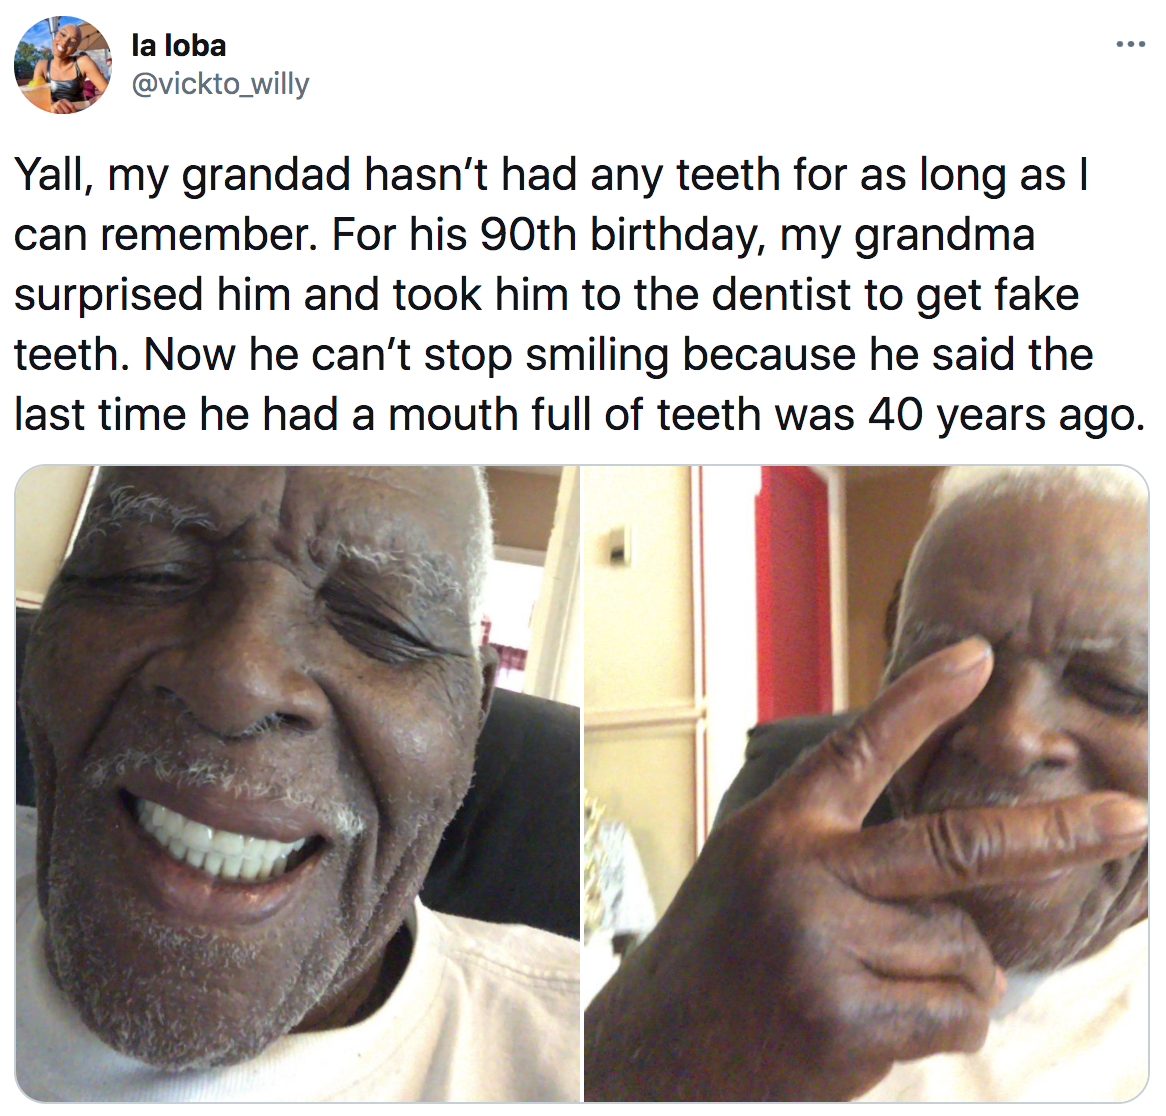 grandpa that got new teeth and is smiling for the first time in 40 years